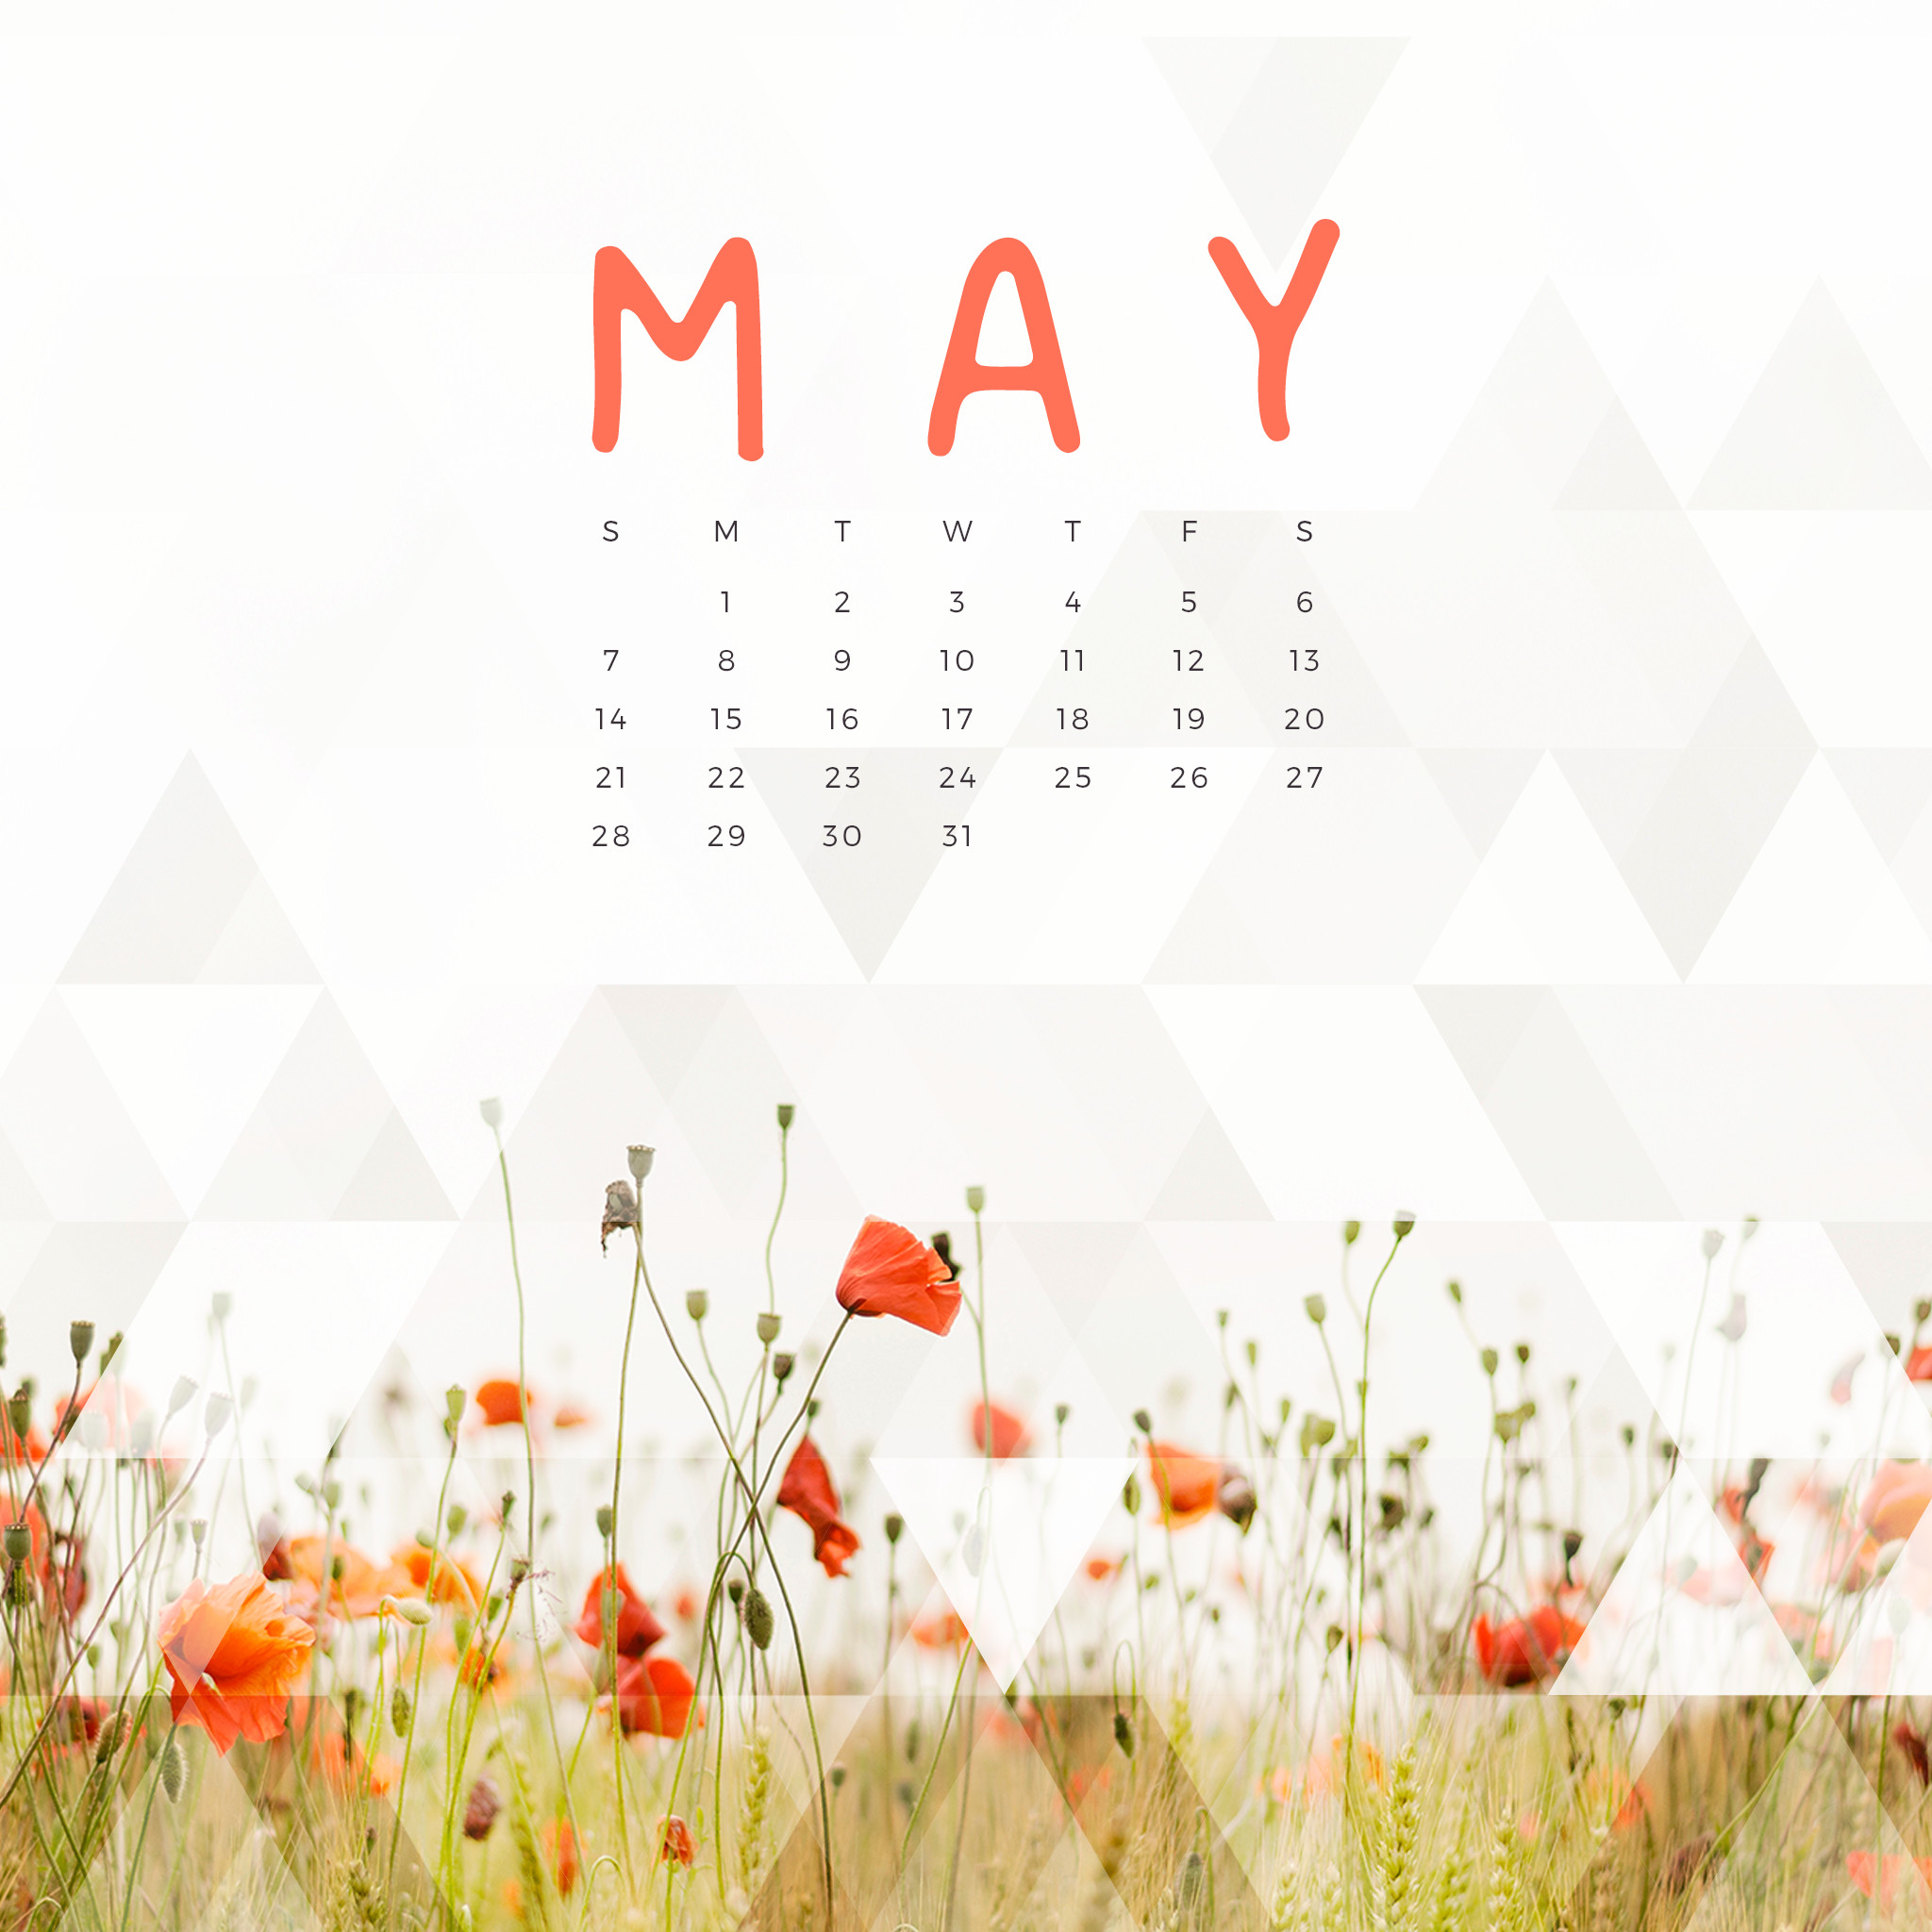 Free May 2018 Calendar for Desktop